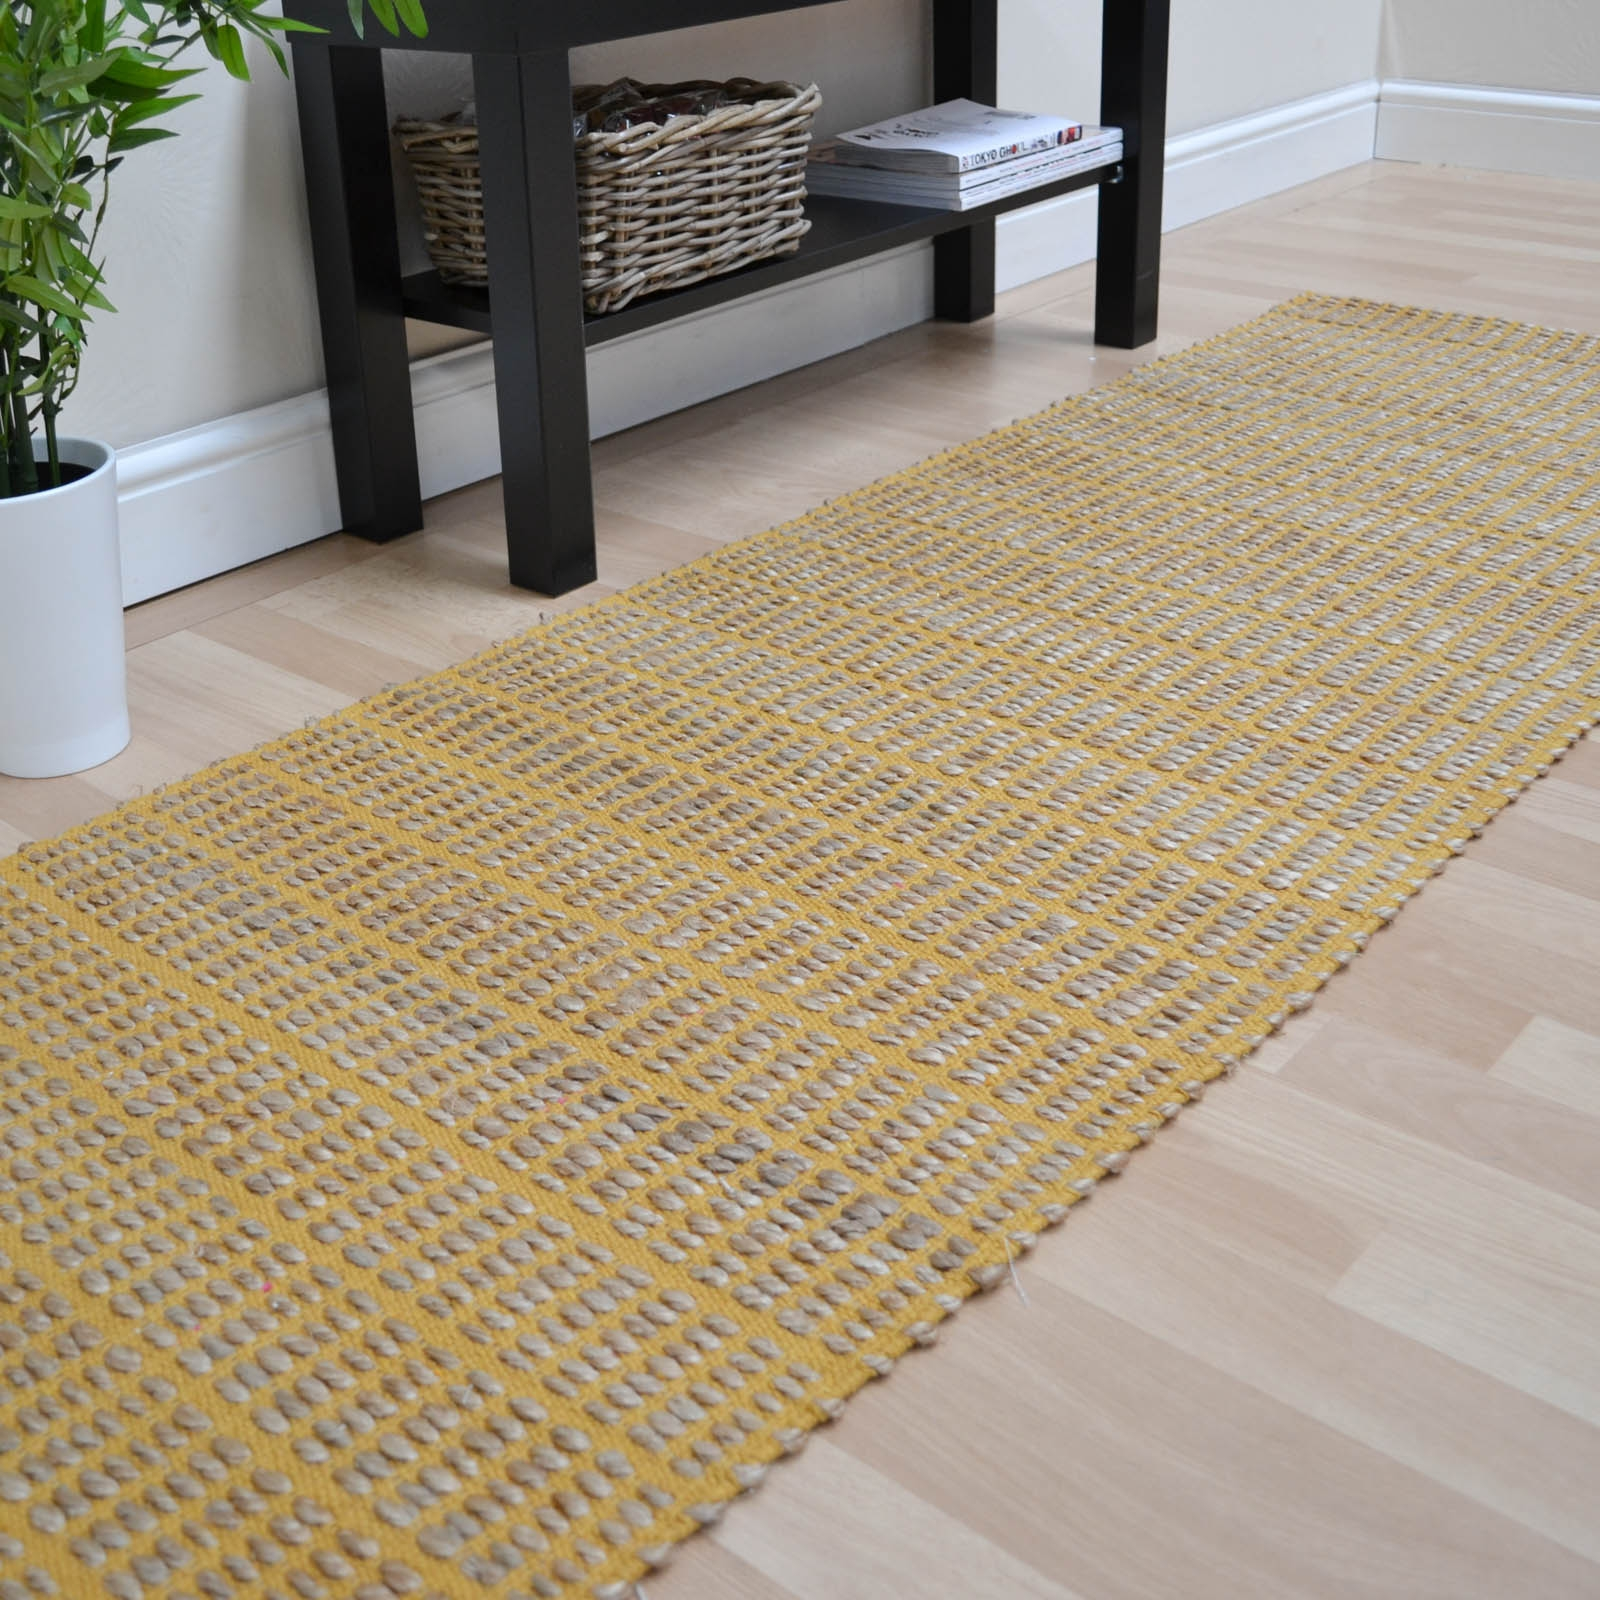 Hallway Runner Rugs Uk Pictures Home Furniture Ideas With Hall Runner (Image 11 of 15)